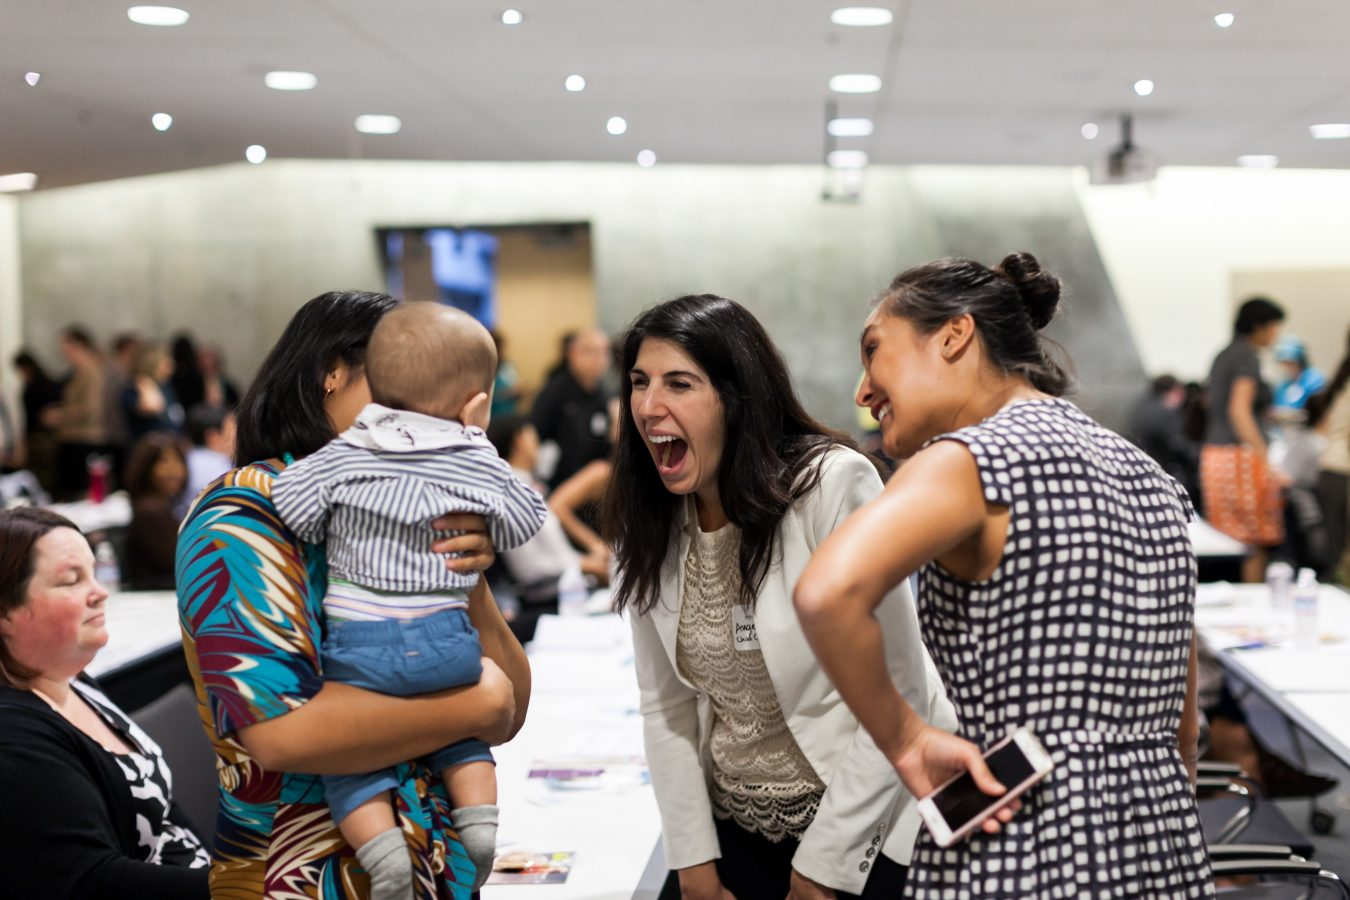 Reserve Your Spot for the October 30 Healthy Mothers Workplace Awards!